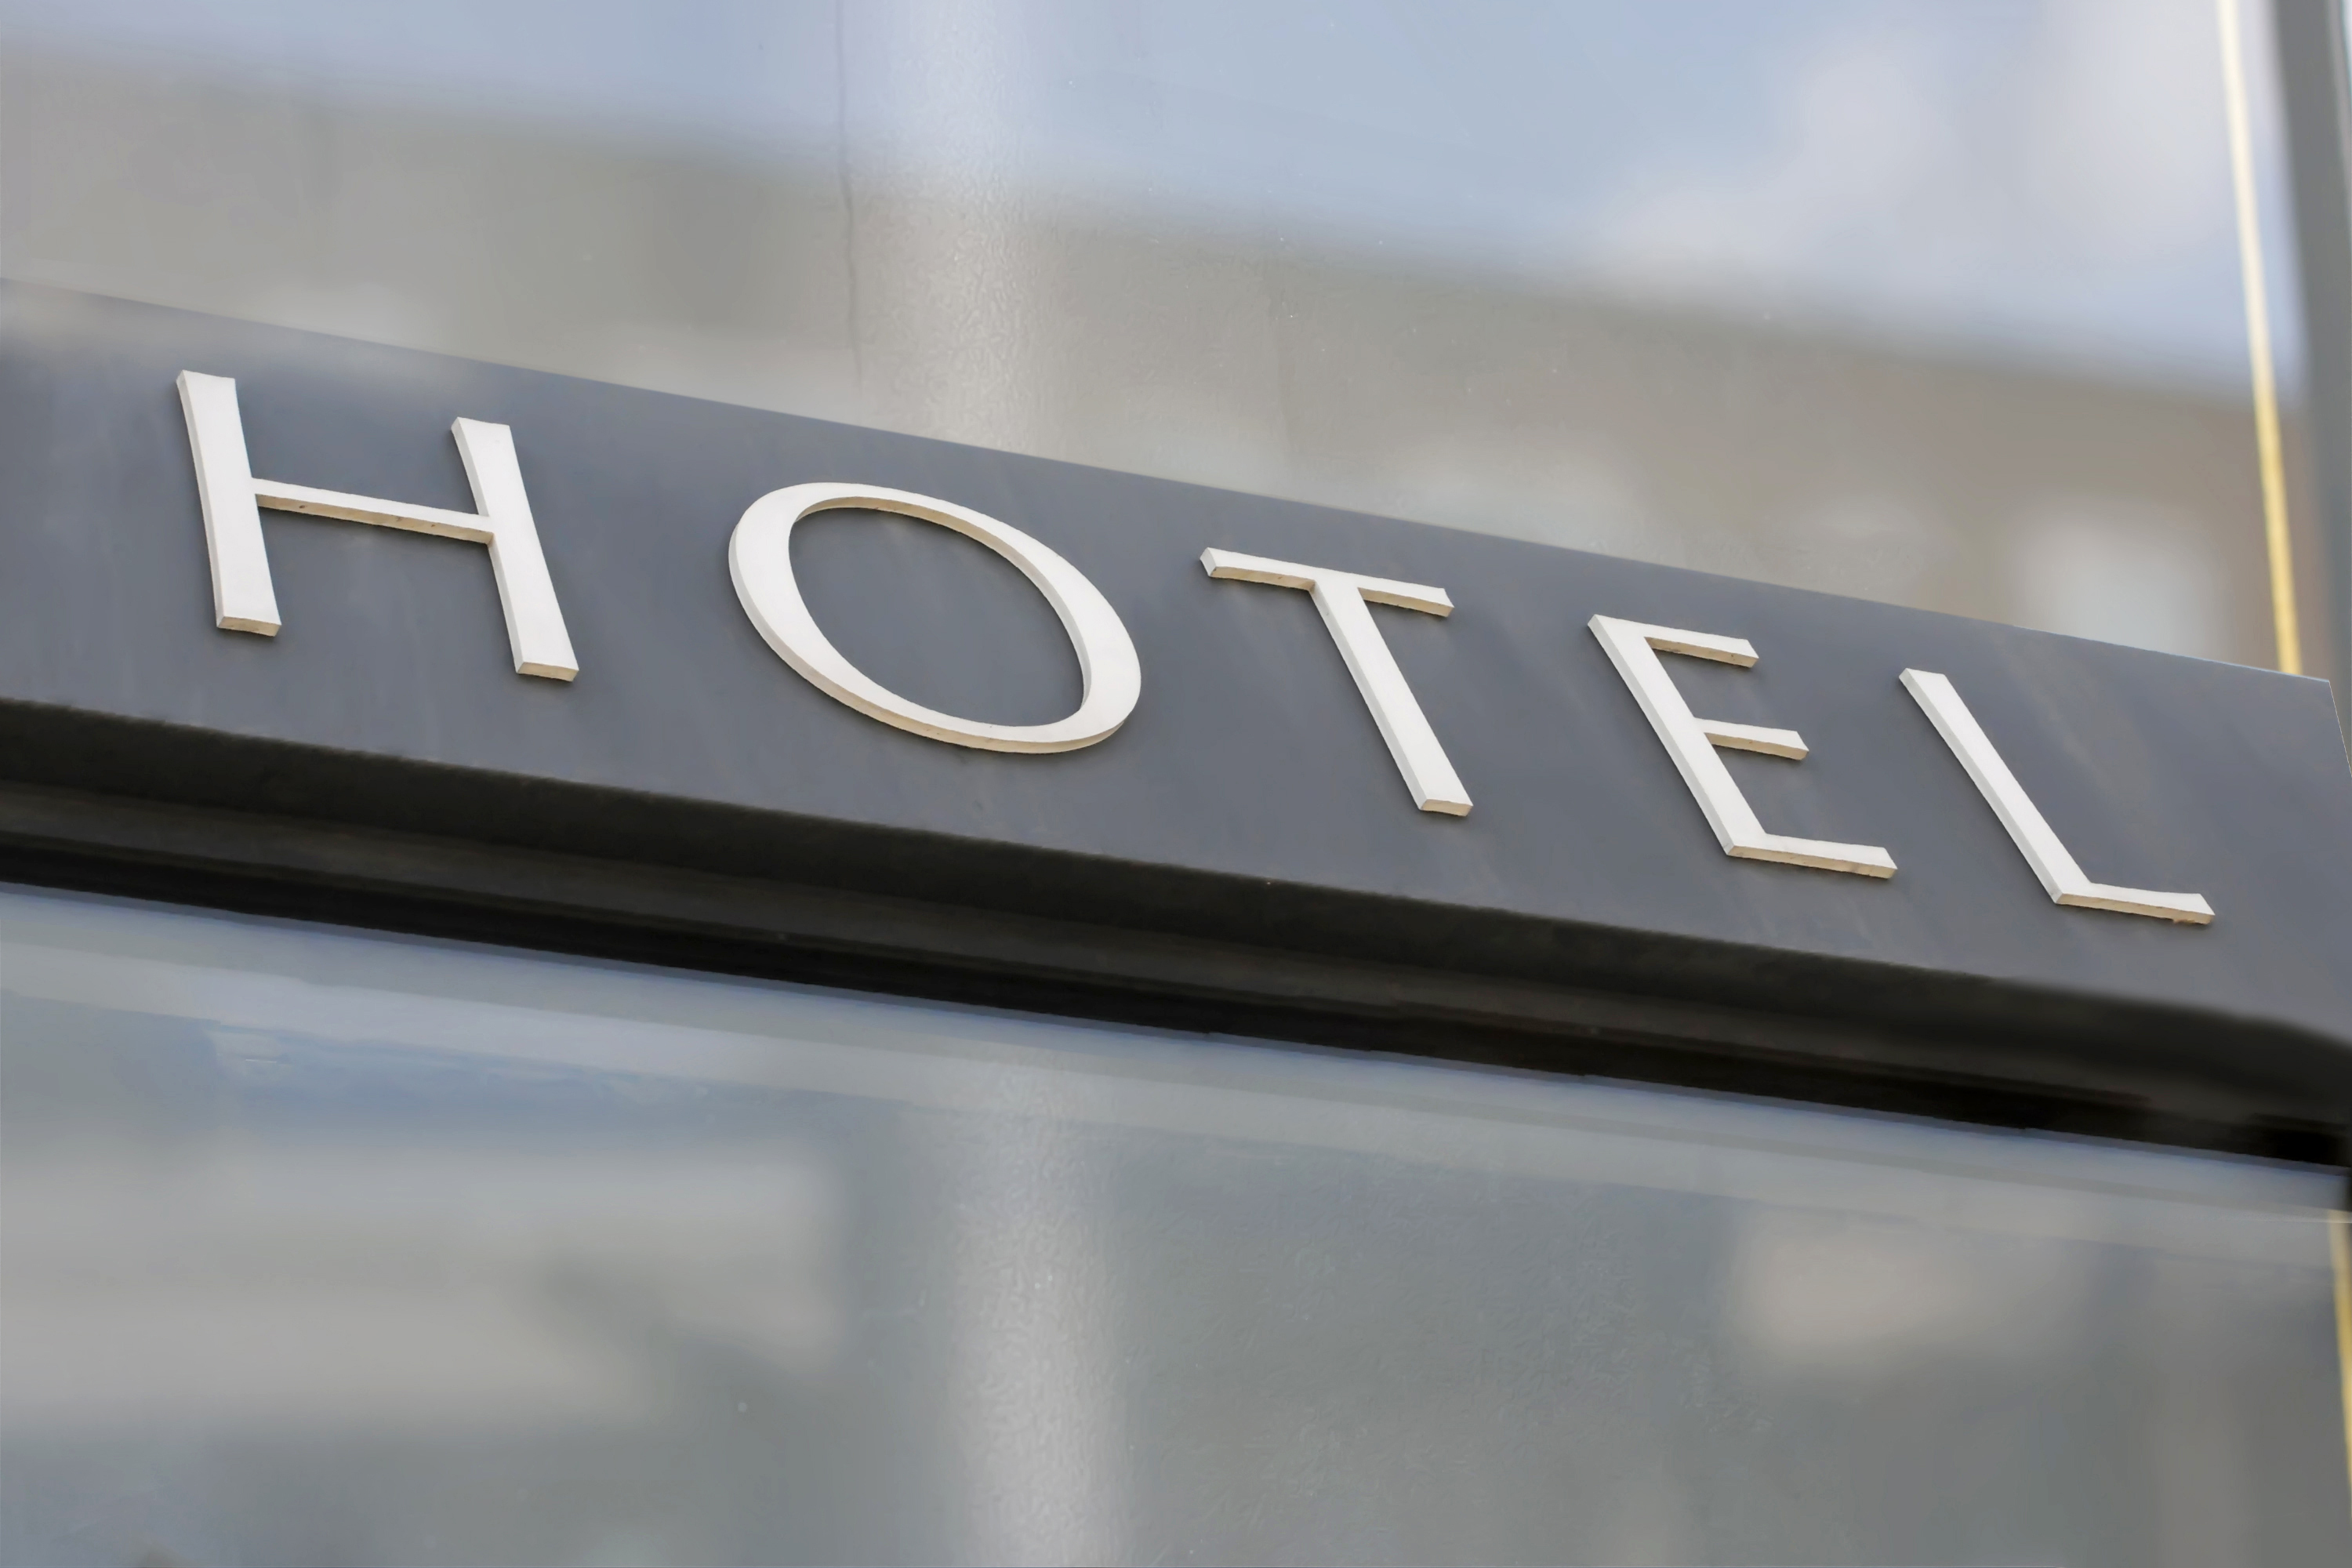 High-end Hotels